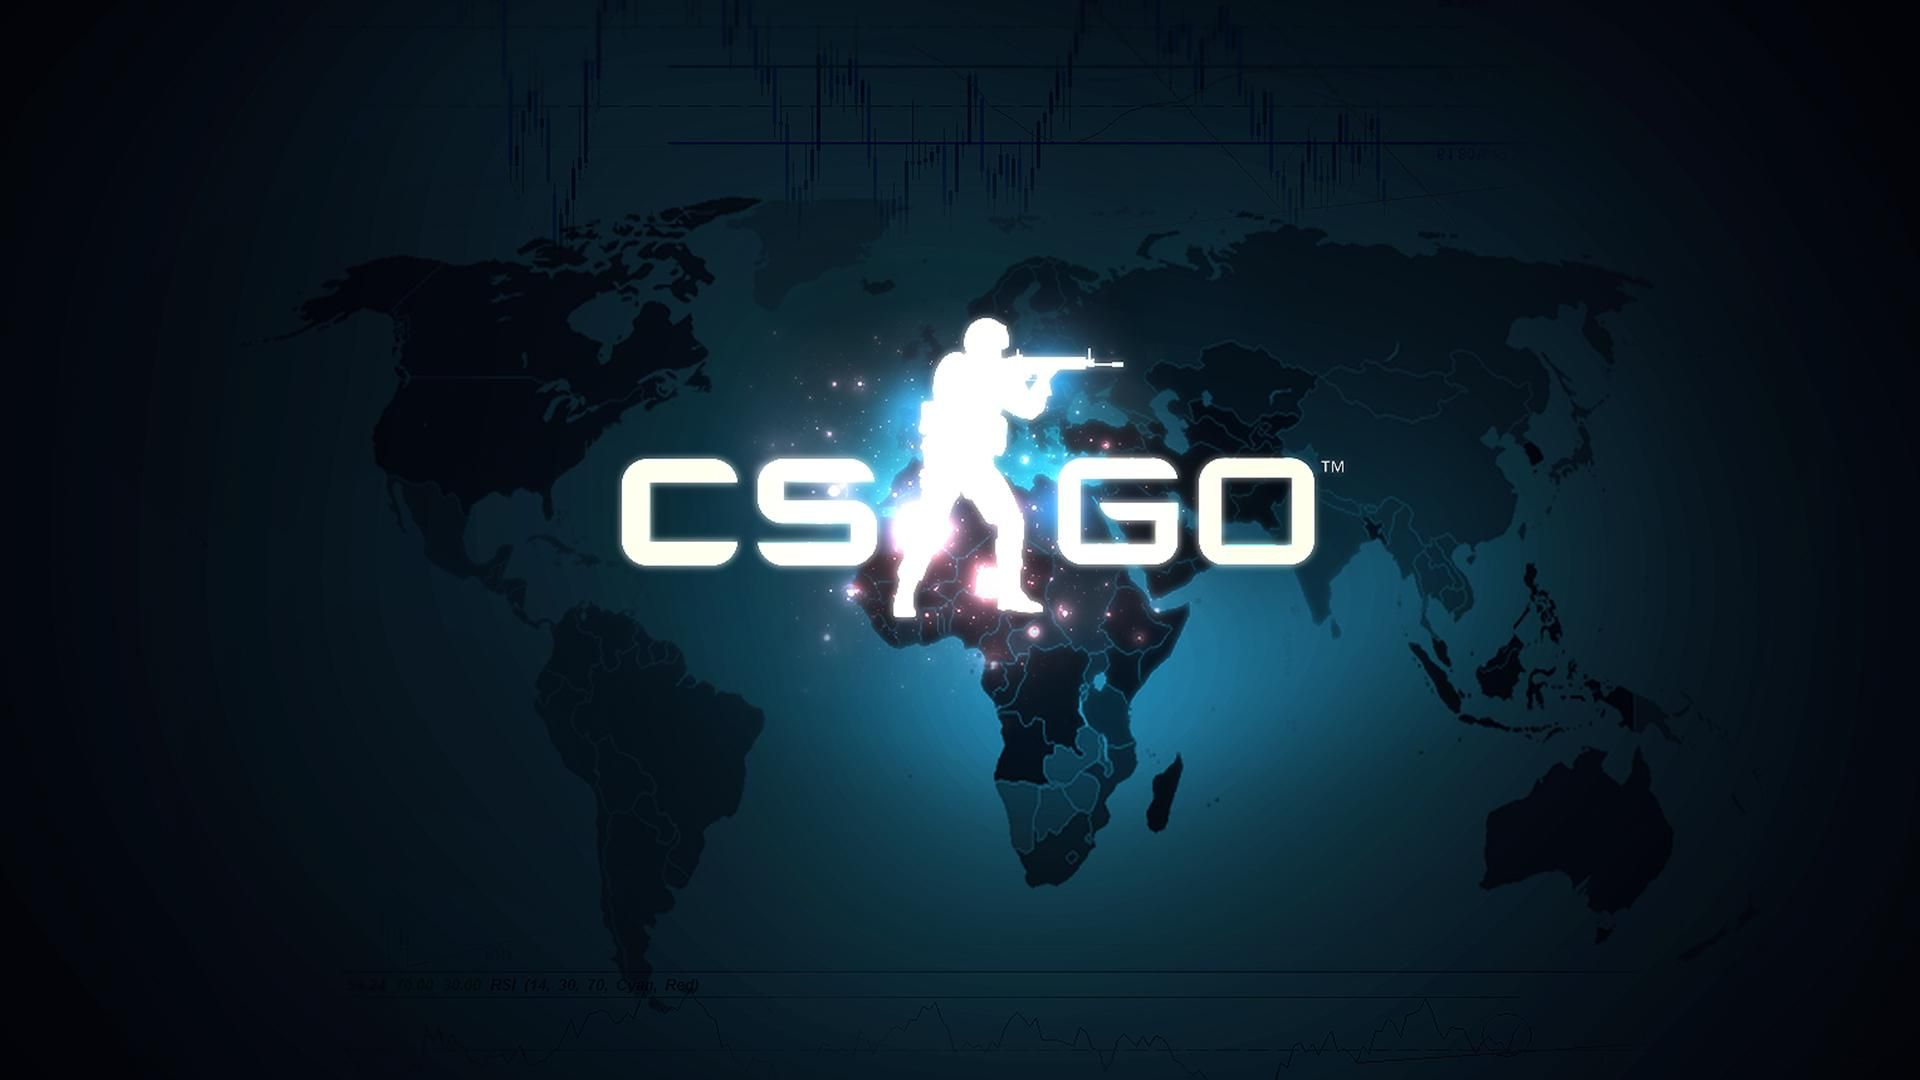 CS:GO – Big Tournaments During the COVID-19 Pandemic